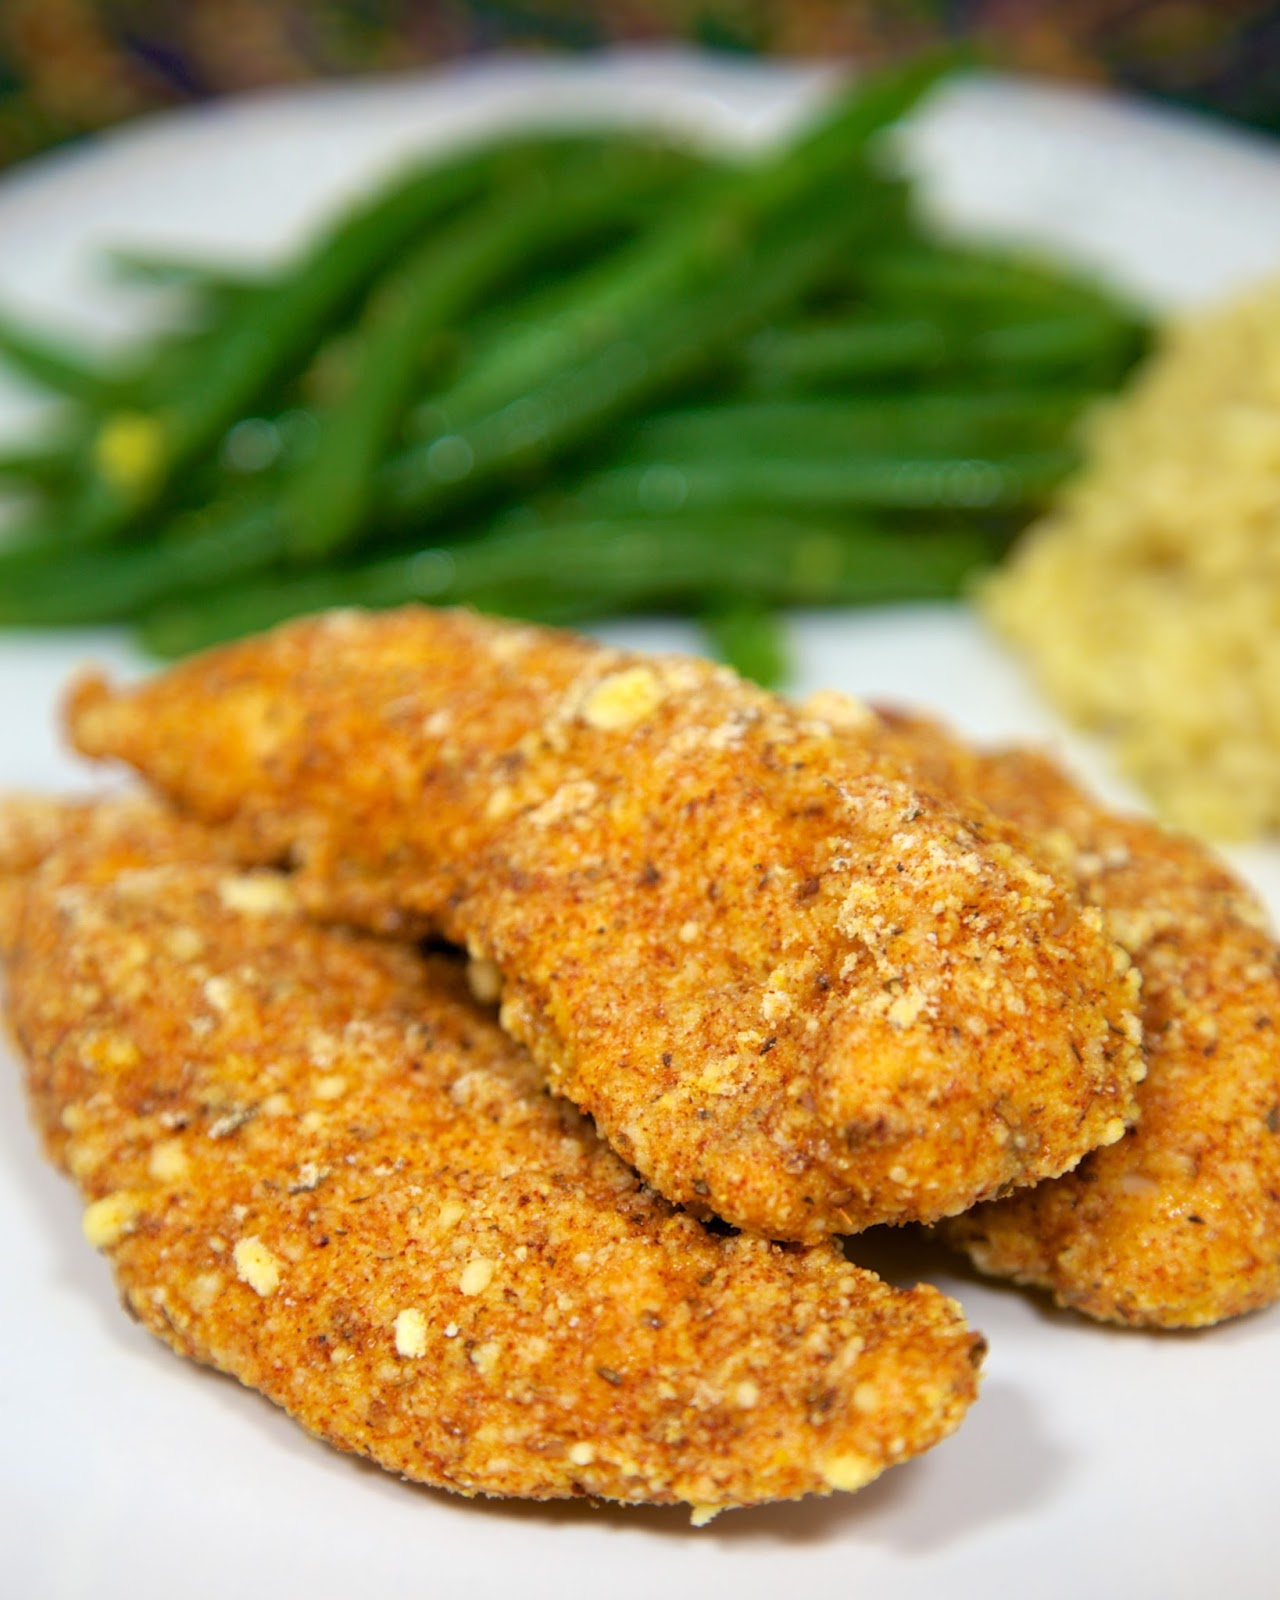 Cajun Cornbread Crusted Chicken Tenders - only 5 ingredients! Chicken, Jiffy mix, cajun seasoning, flour and eggs. Control the heat by adjusting the cajun seasoning. Baked not fried! Ready in about 15 minutes!